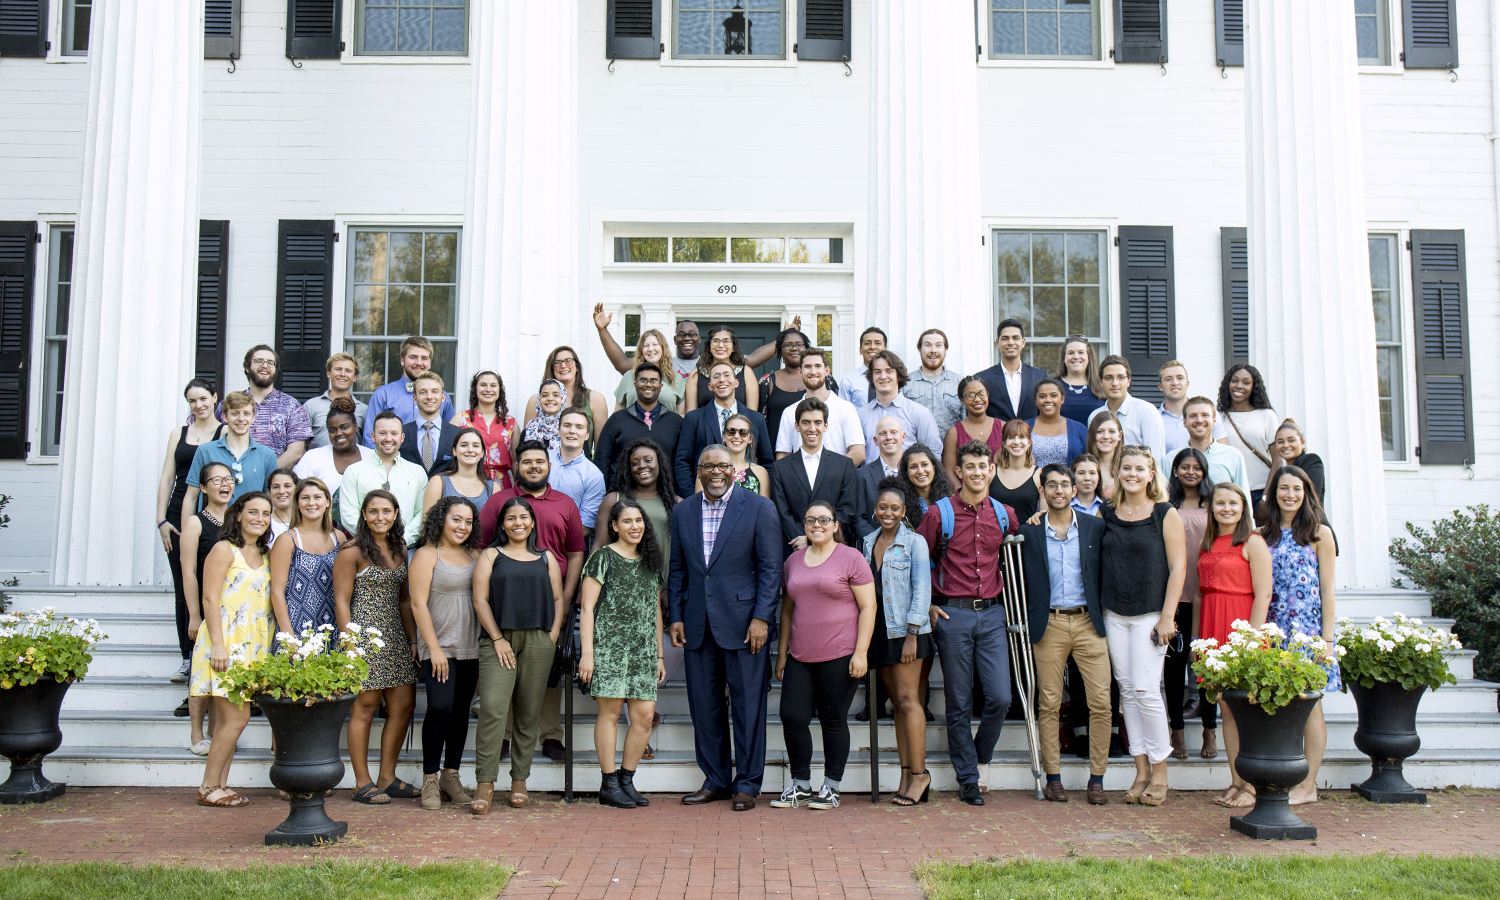 President Gregory J. Vincent '83 joins the Residential Education staff and resident assistants for a group photo on the steps of the President's House after the annual Resident Assistant Welcome Dinner.